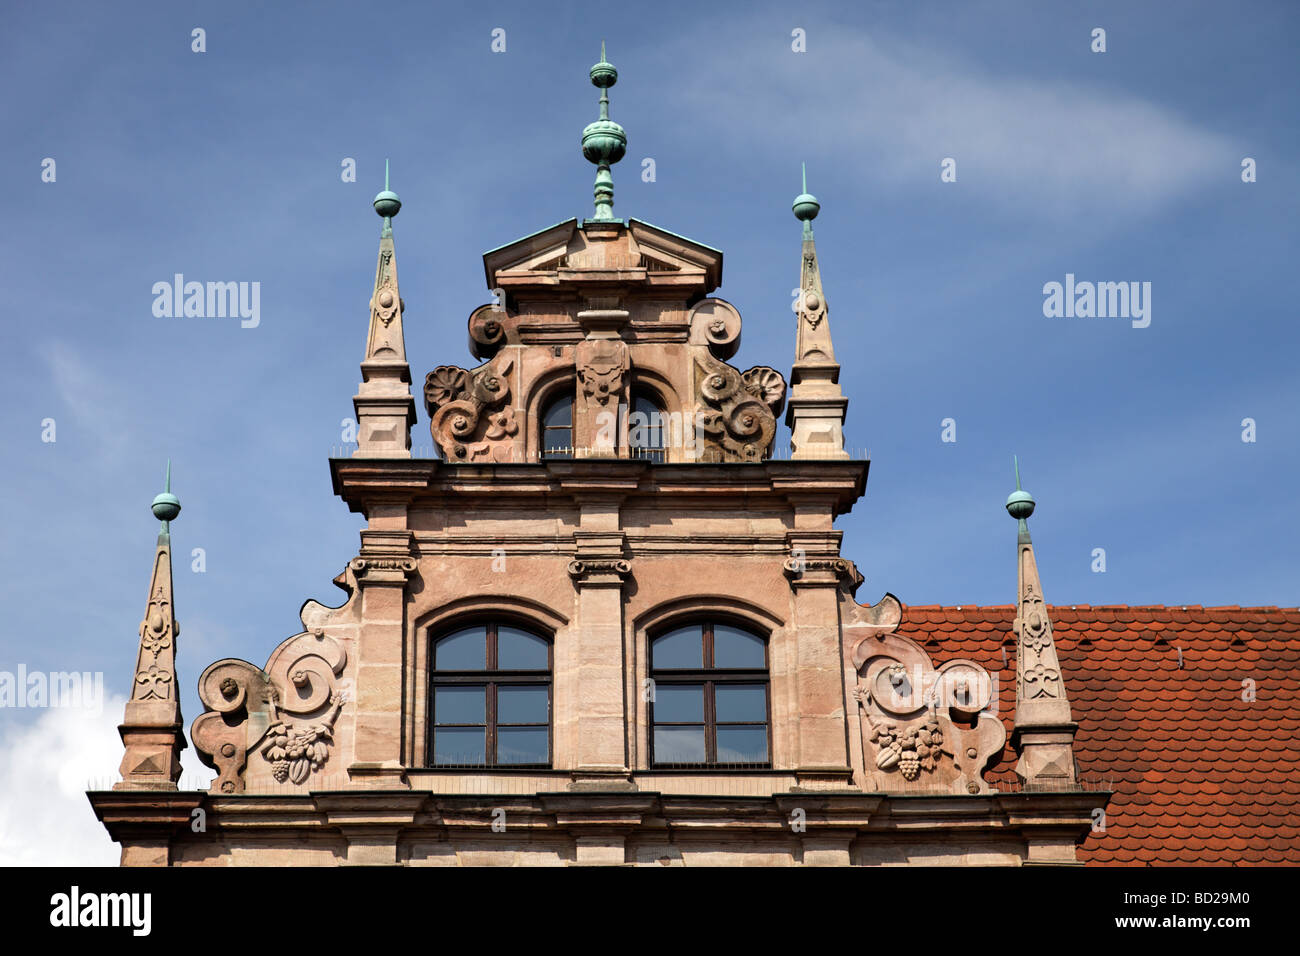 Toy museum, gable, renaissance, former Patrician house, built around 1517, Karlstrasse 13-15, historic centre, City - Stock Image